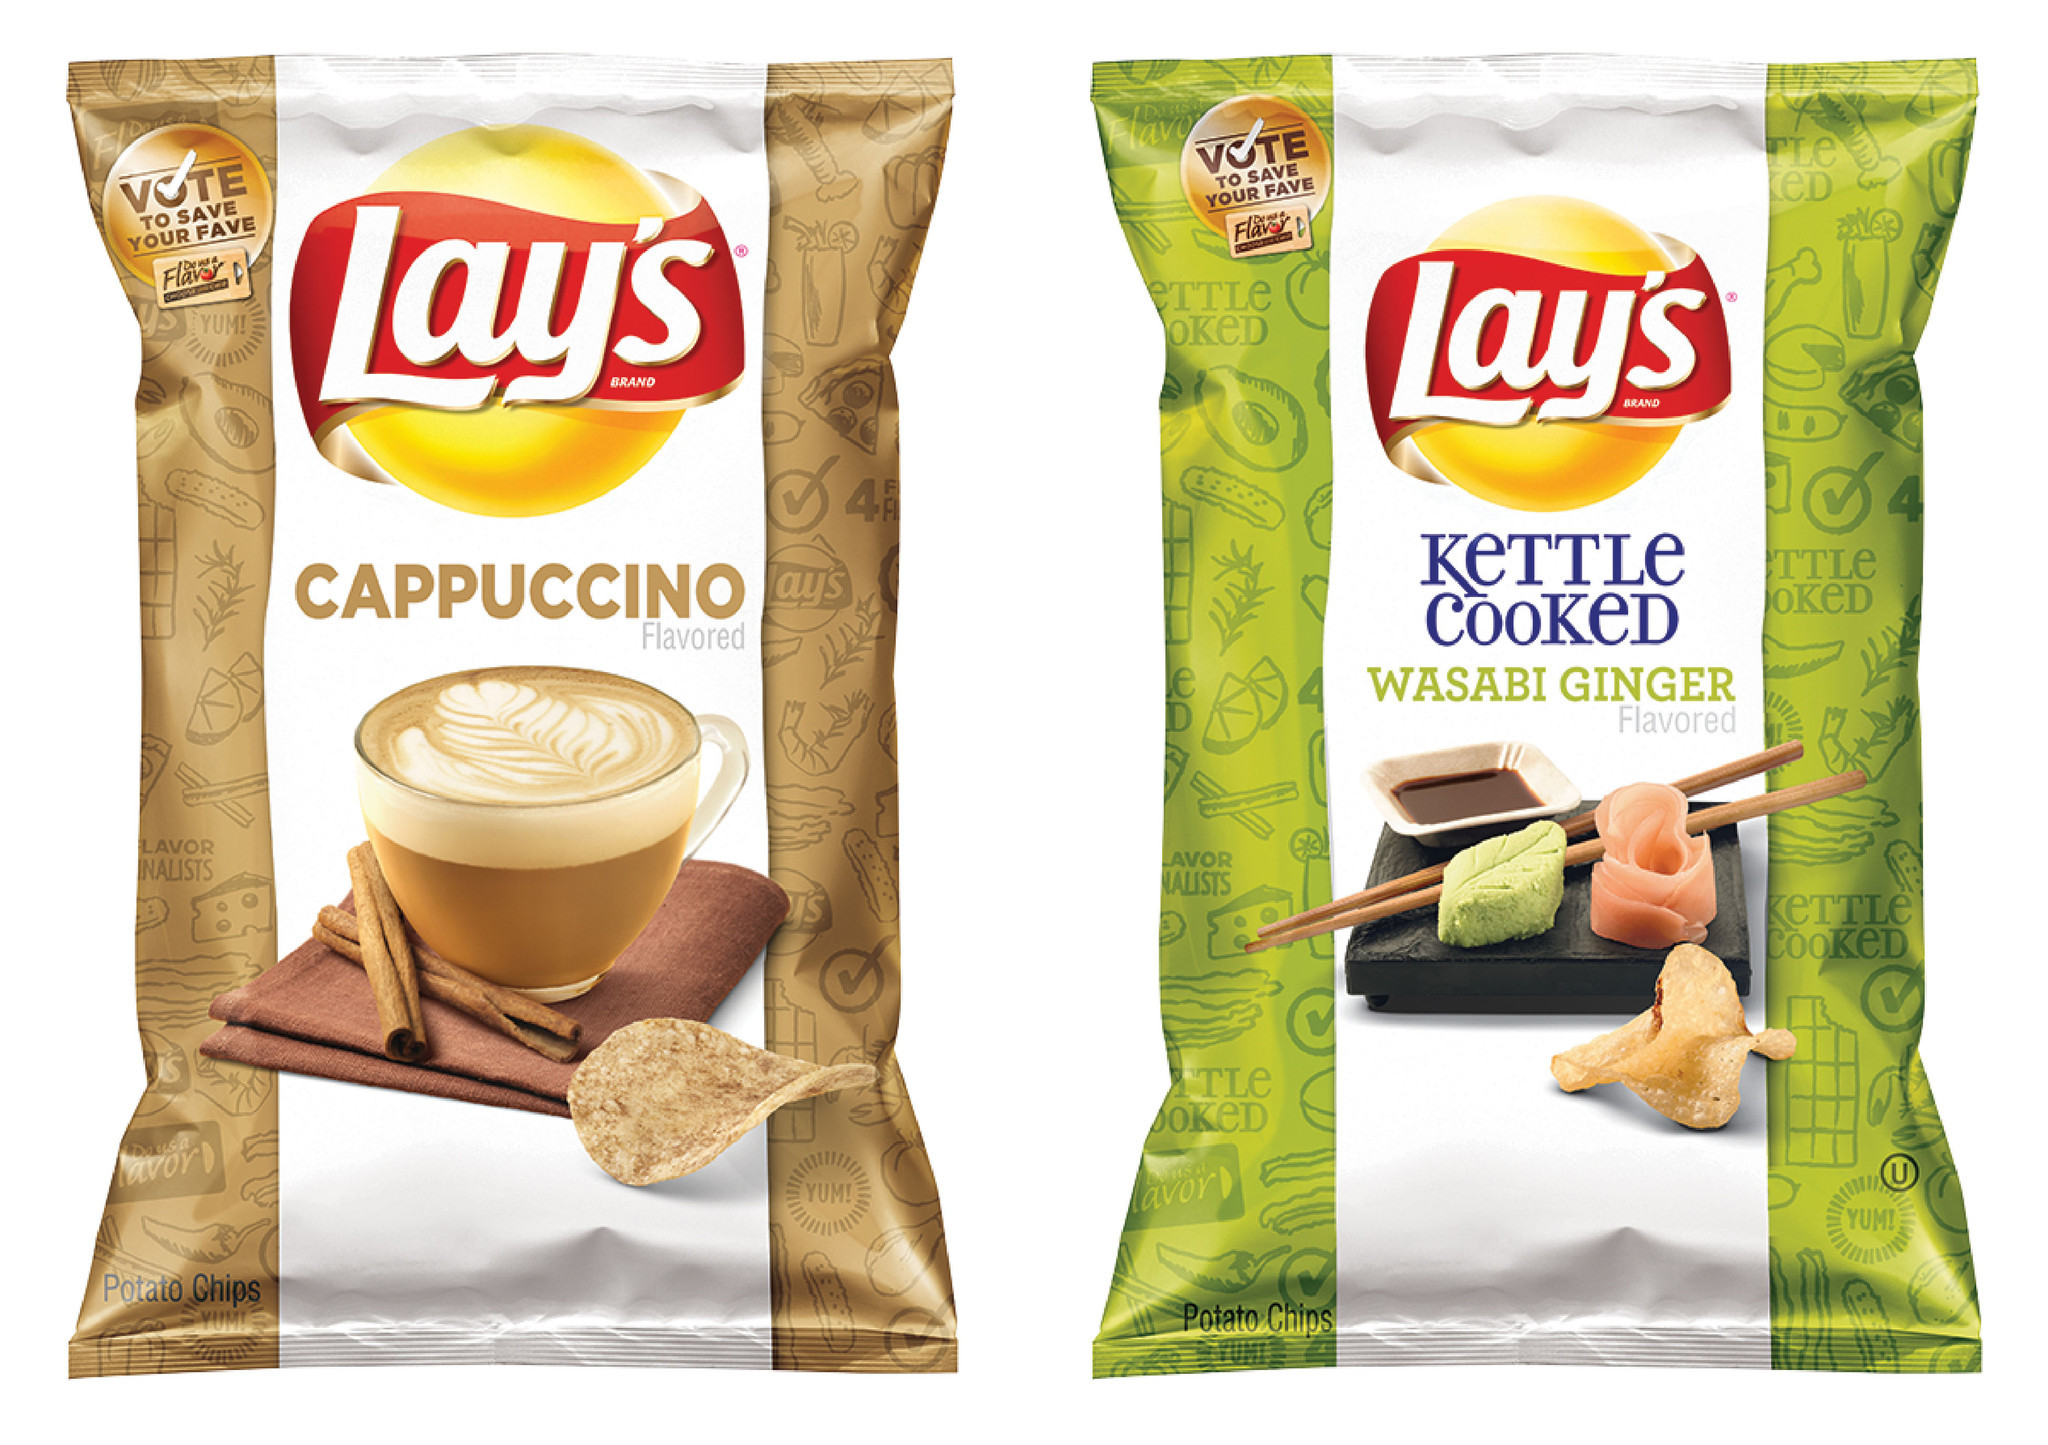 omg lays wavy milk chocolate covered potato chips are